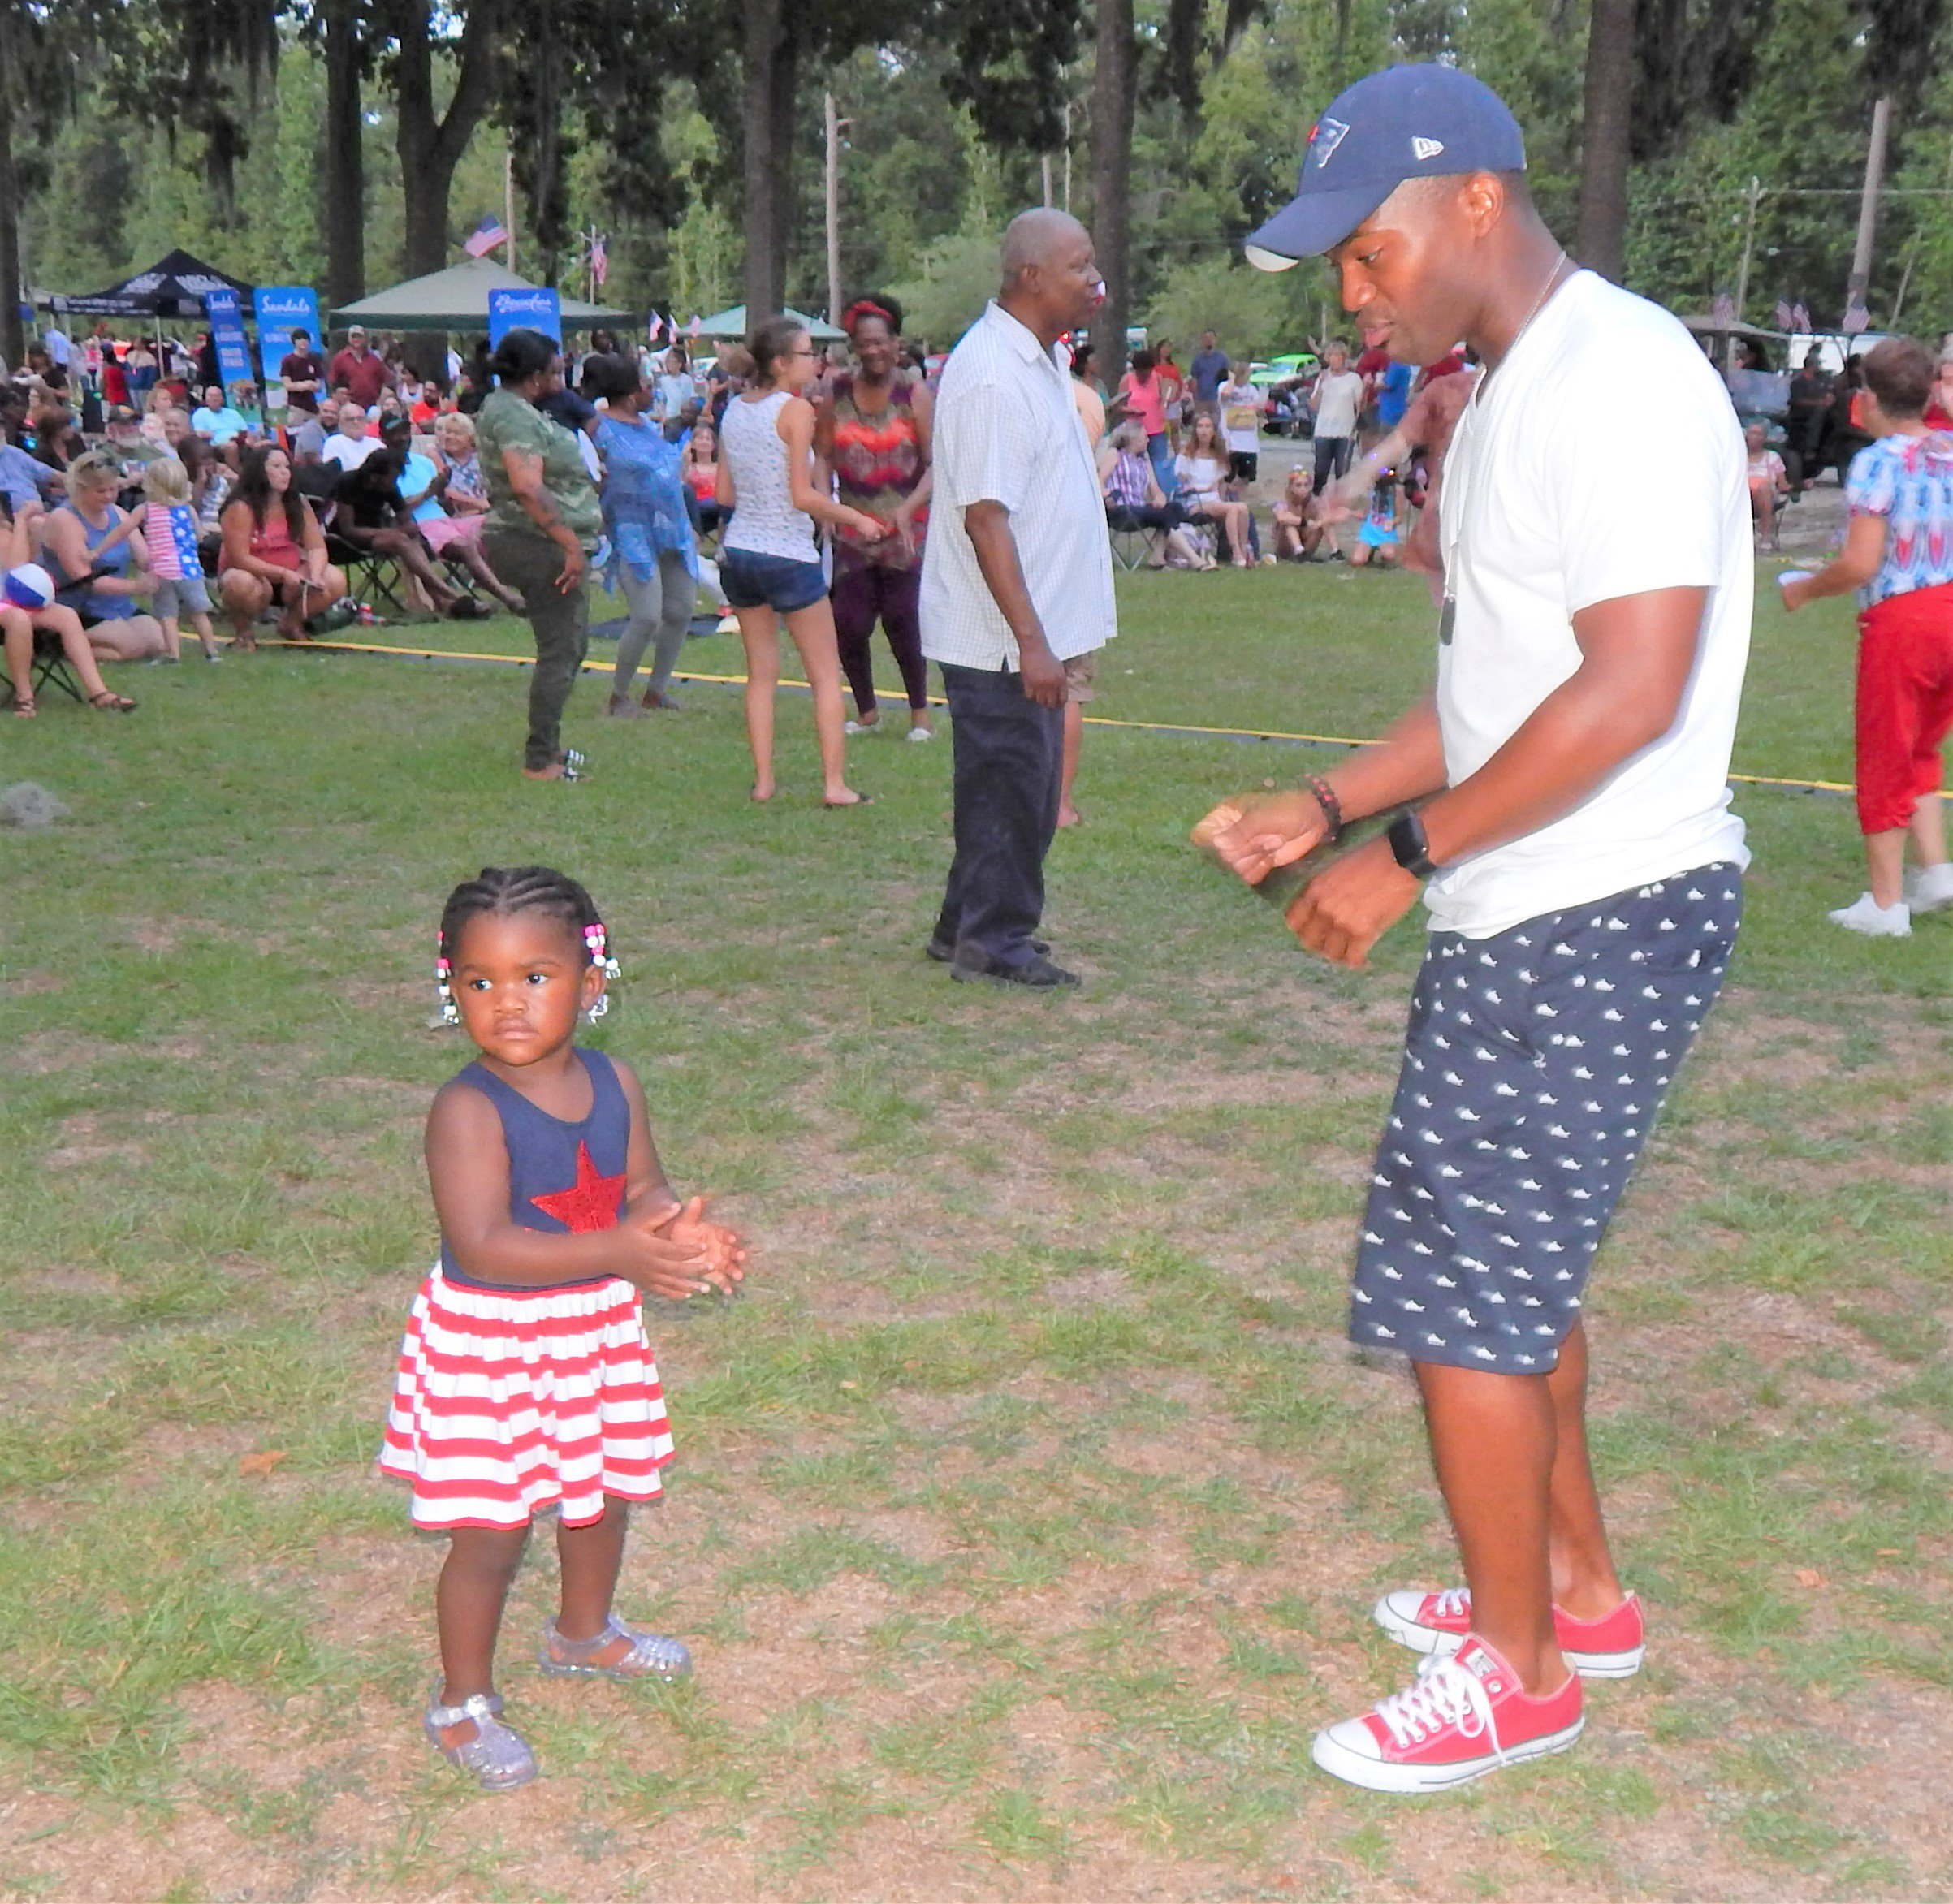 This father and daughter were among those who got up and danced. Photo by Mark Swendra